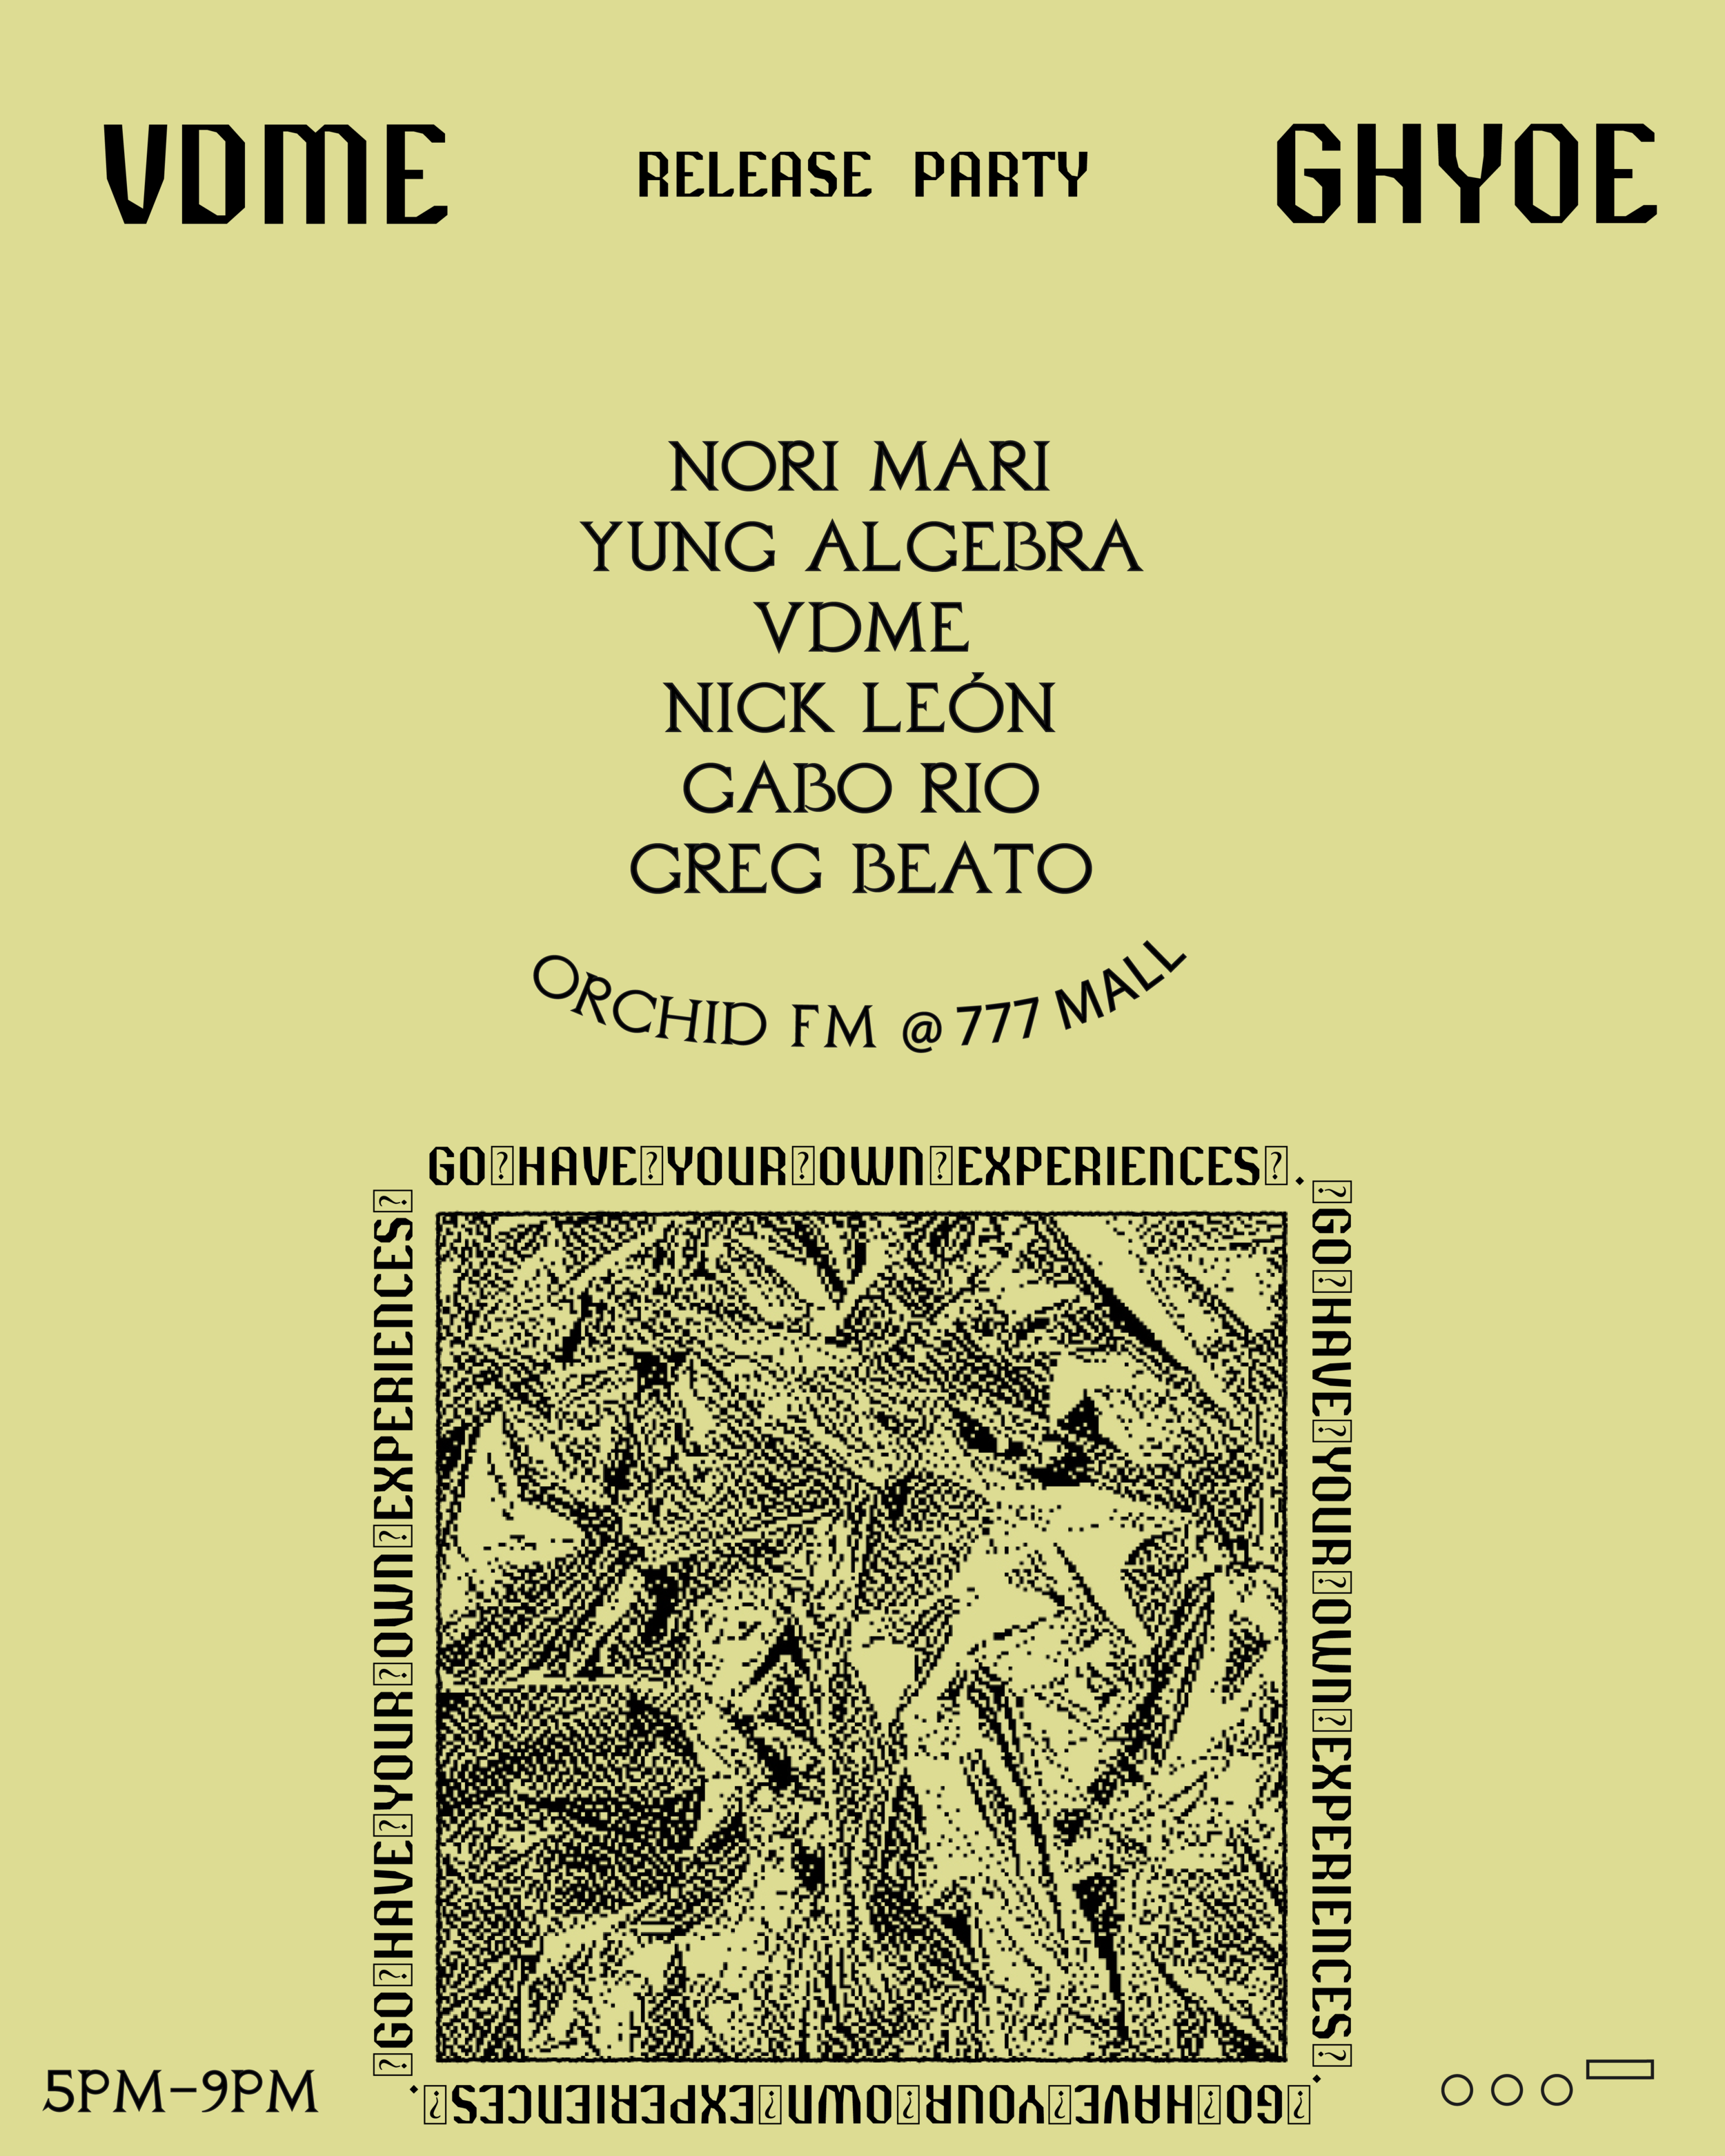 VDME RELEASE PARTY FLYER-01-1.png